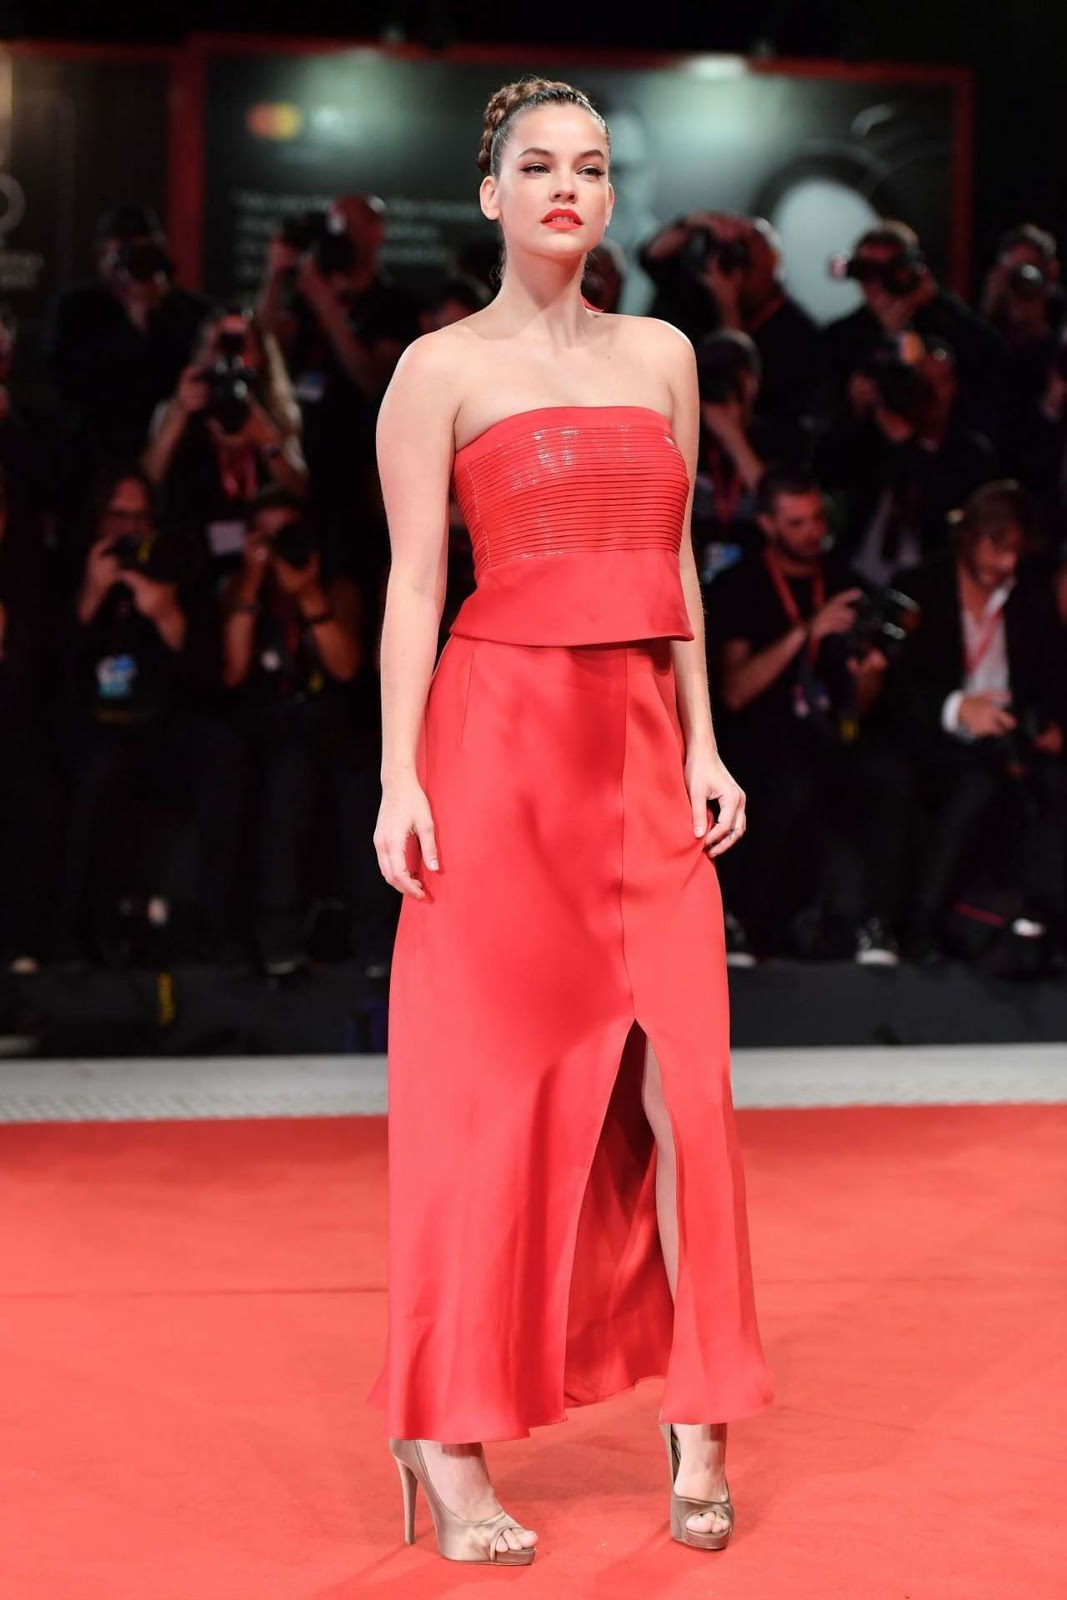 Barbara Palvin is radiant in red as she arrives for the premiere of Seberg during the 2019 Venice Film Festival